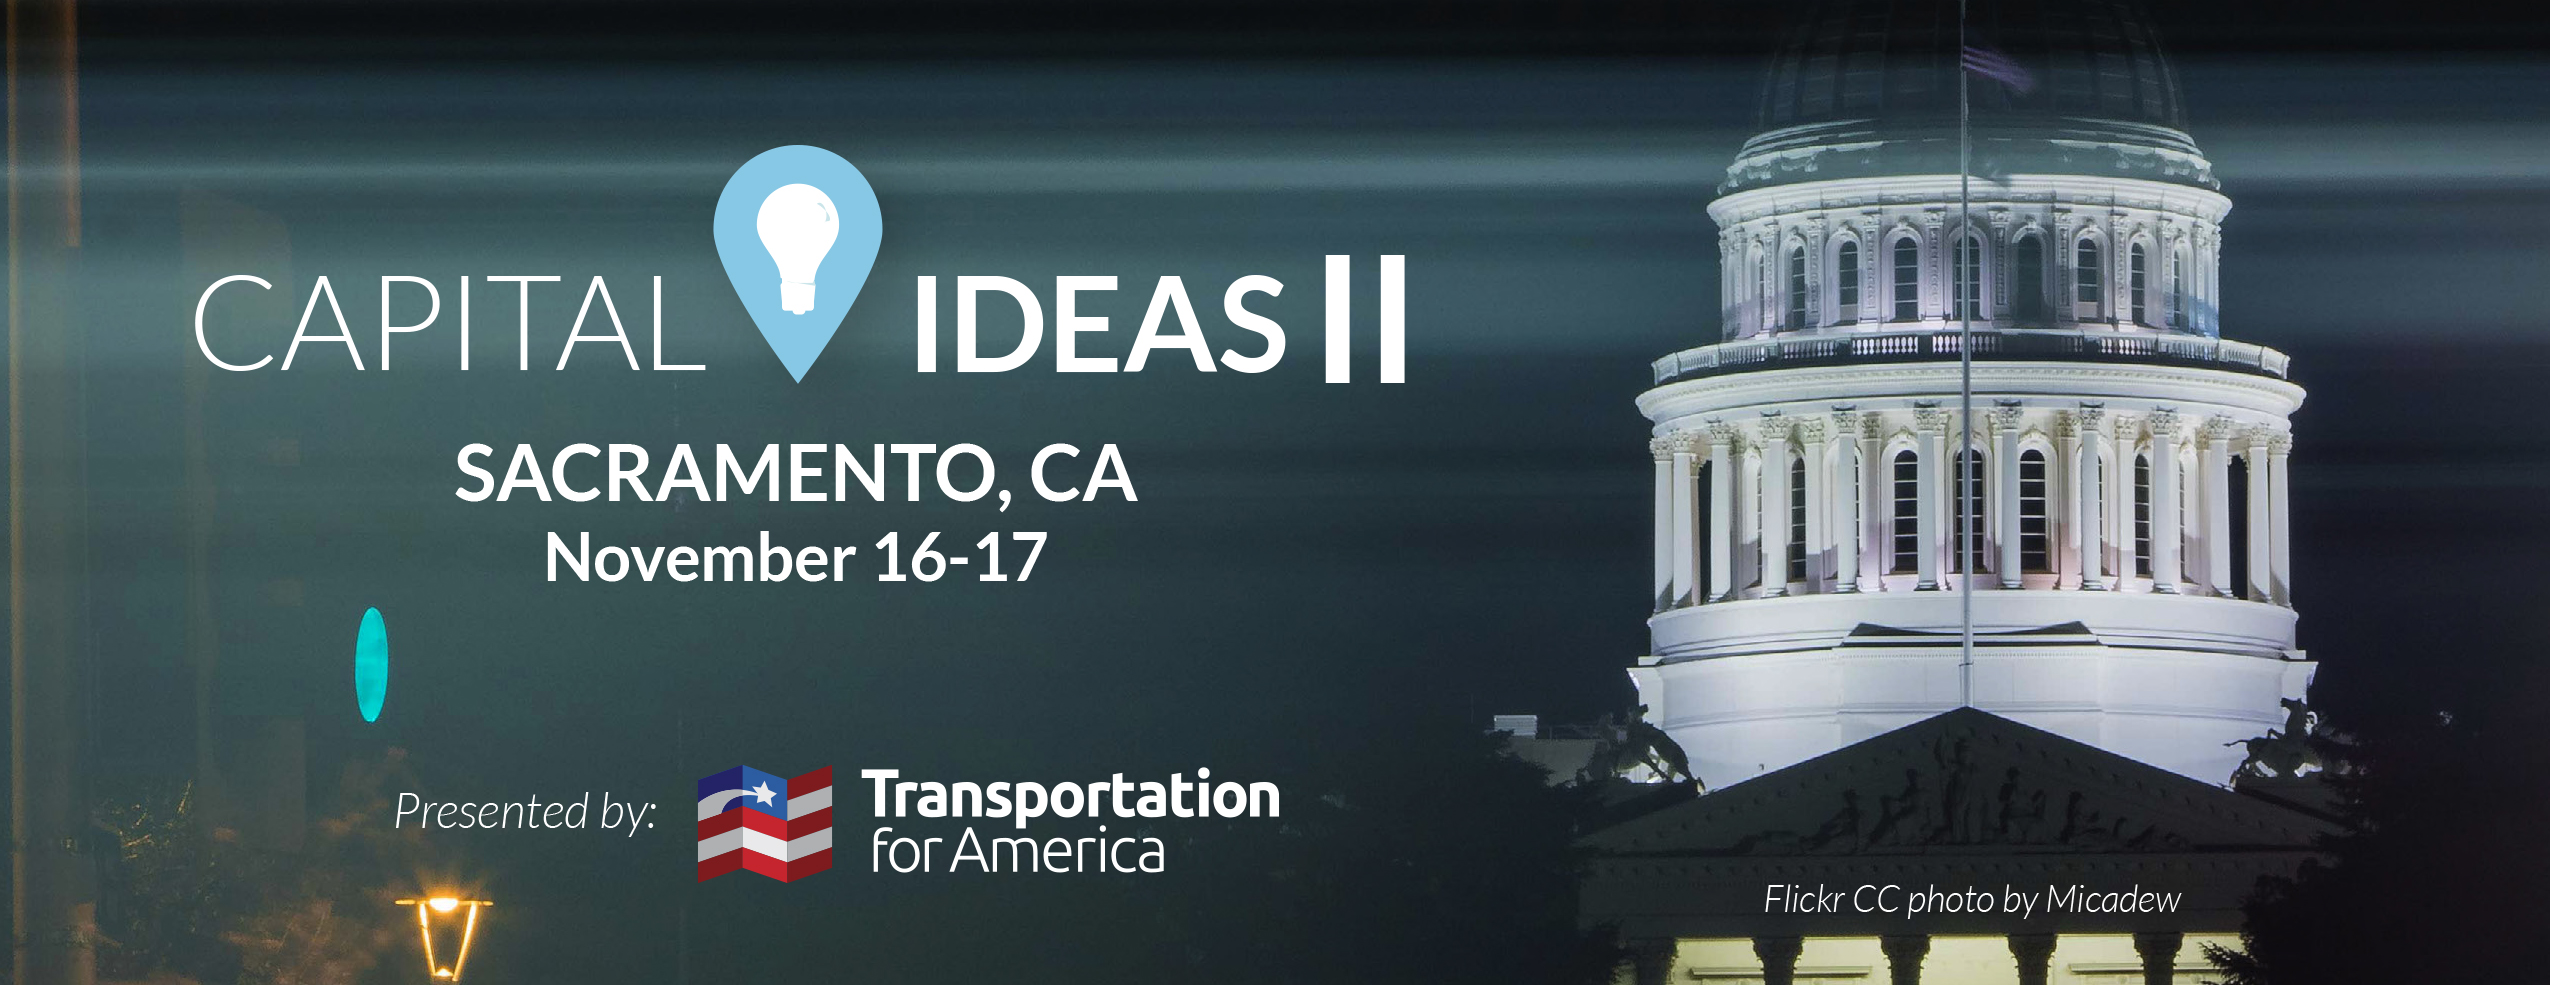 Capital Ideas banner sacramento promo